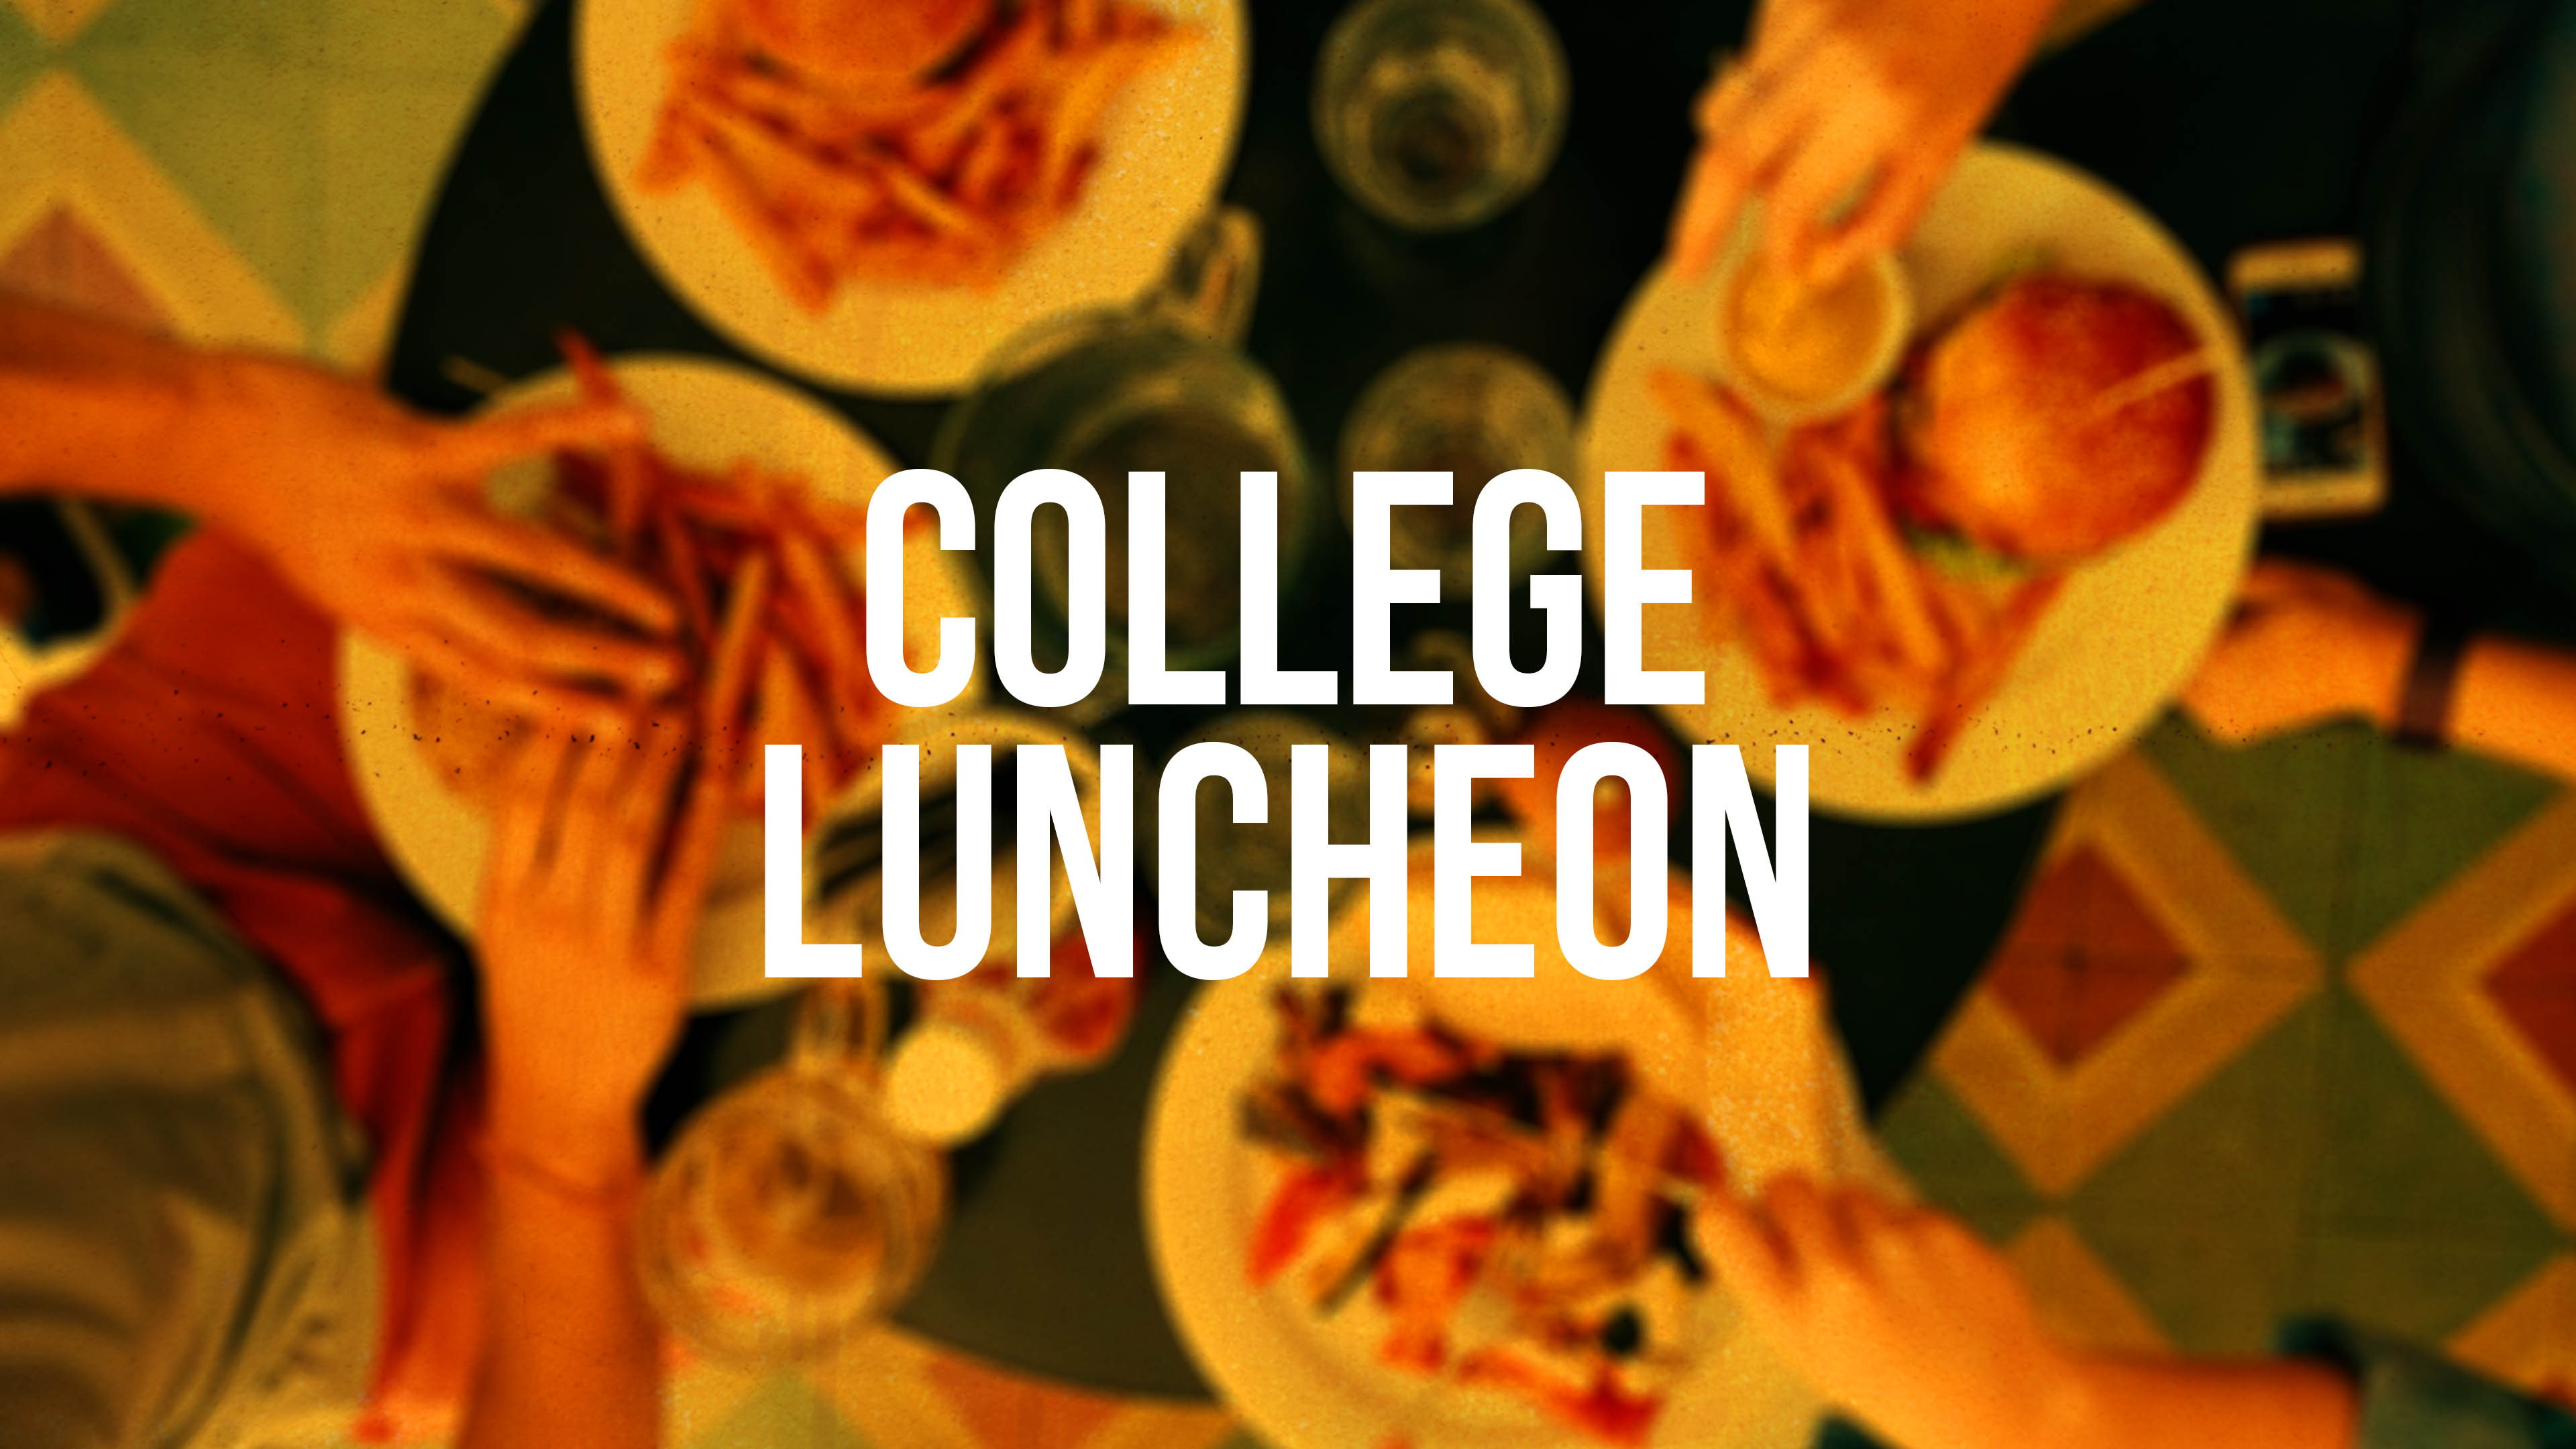 College luncheon